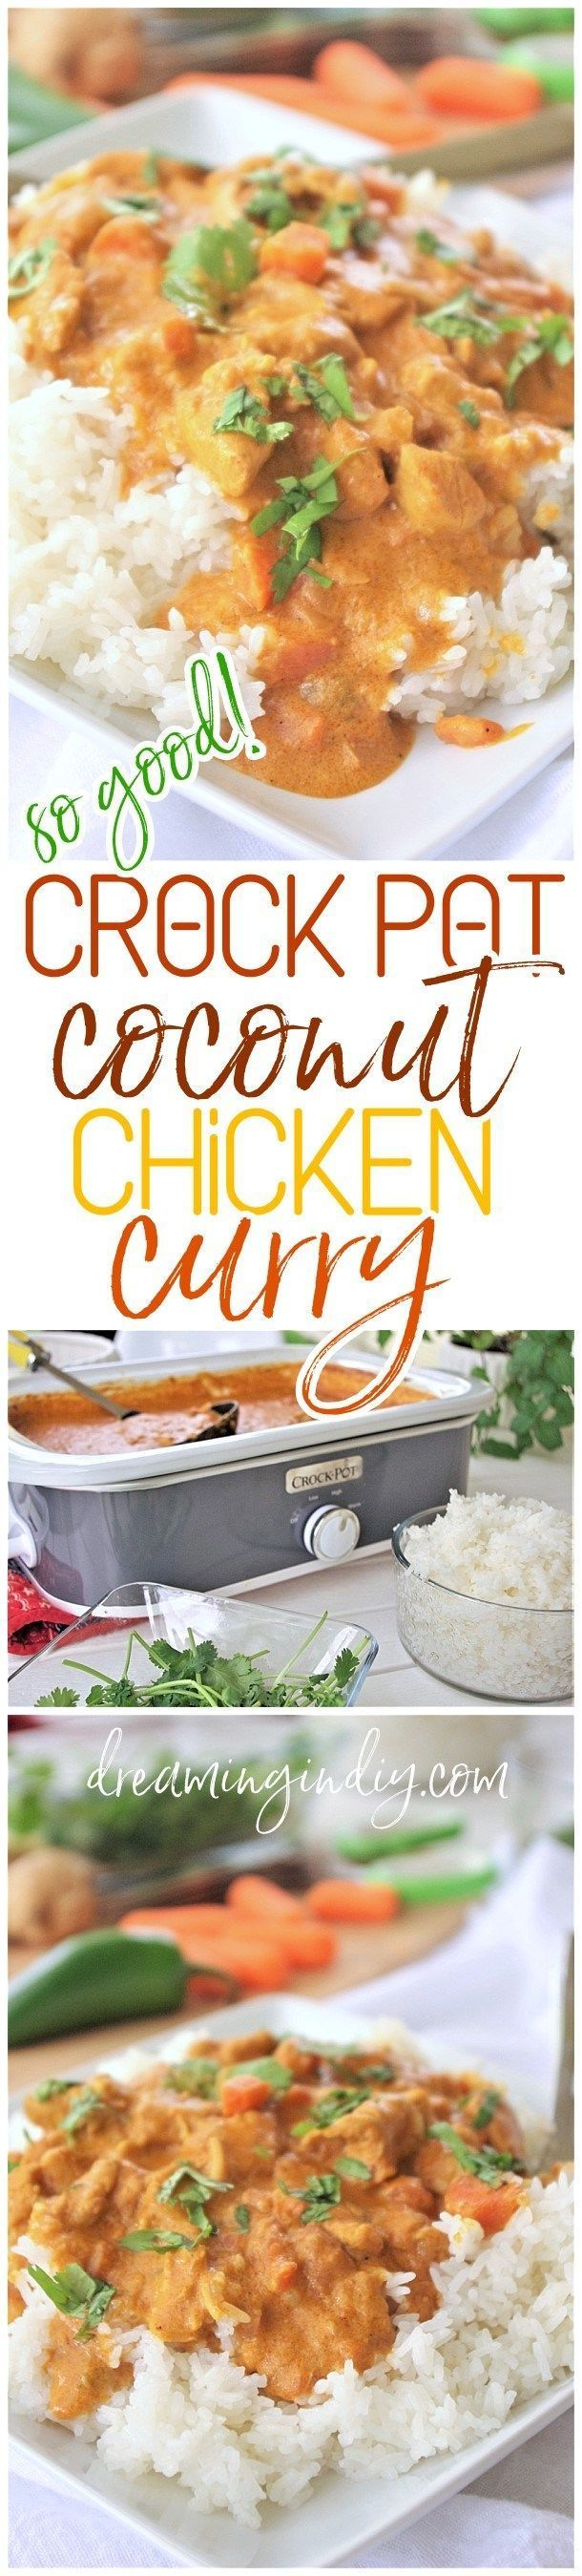 The BEST Easy Coconut Curry Crockpot Chicken Family Dinner Recipe - Yummy Slow C The BEST Easy Coconut Curry Crockpot Chicken Family Dinner Recipe - Yummy Slow C...